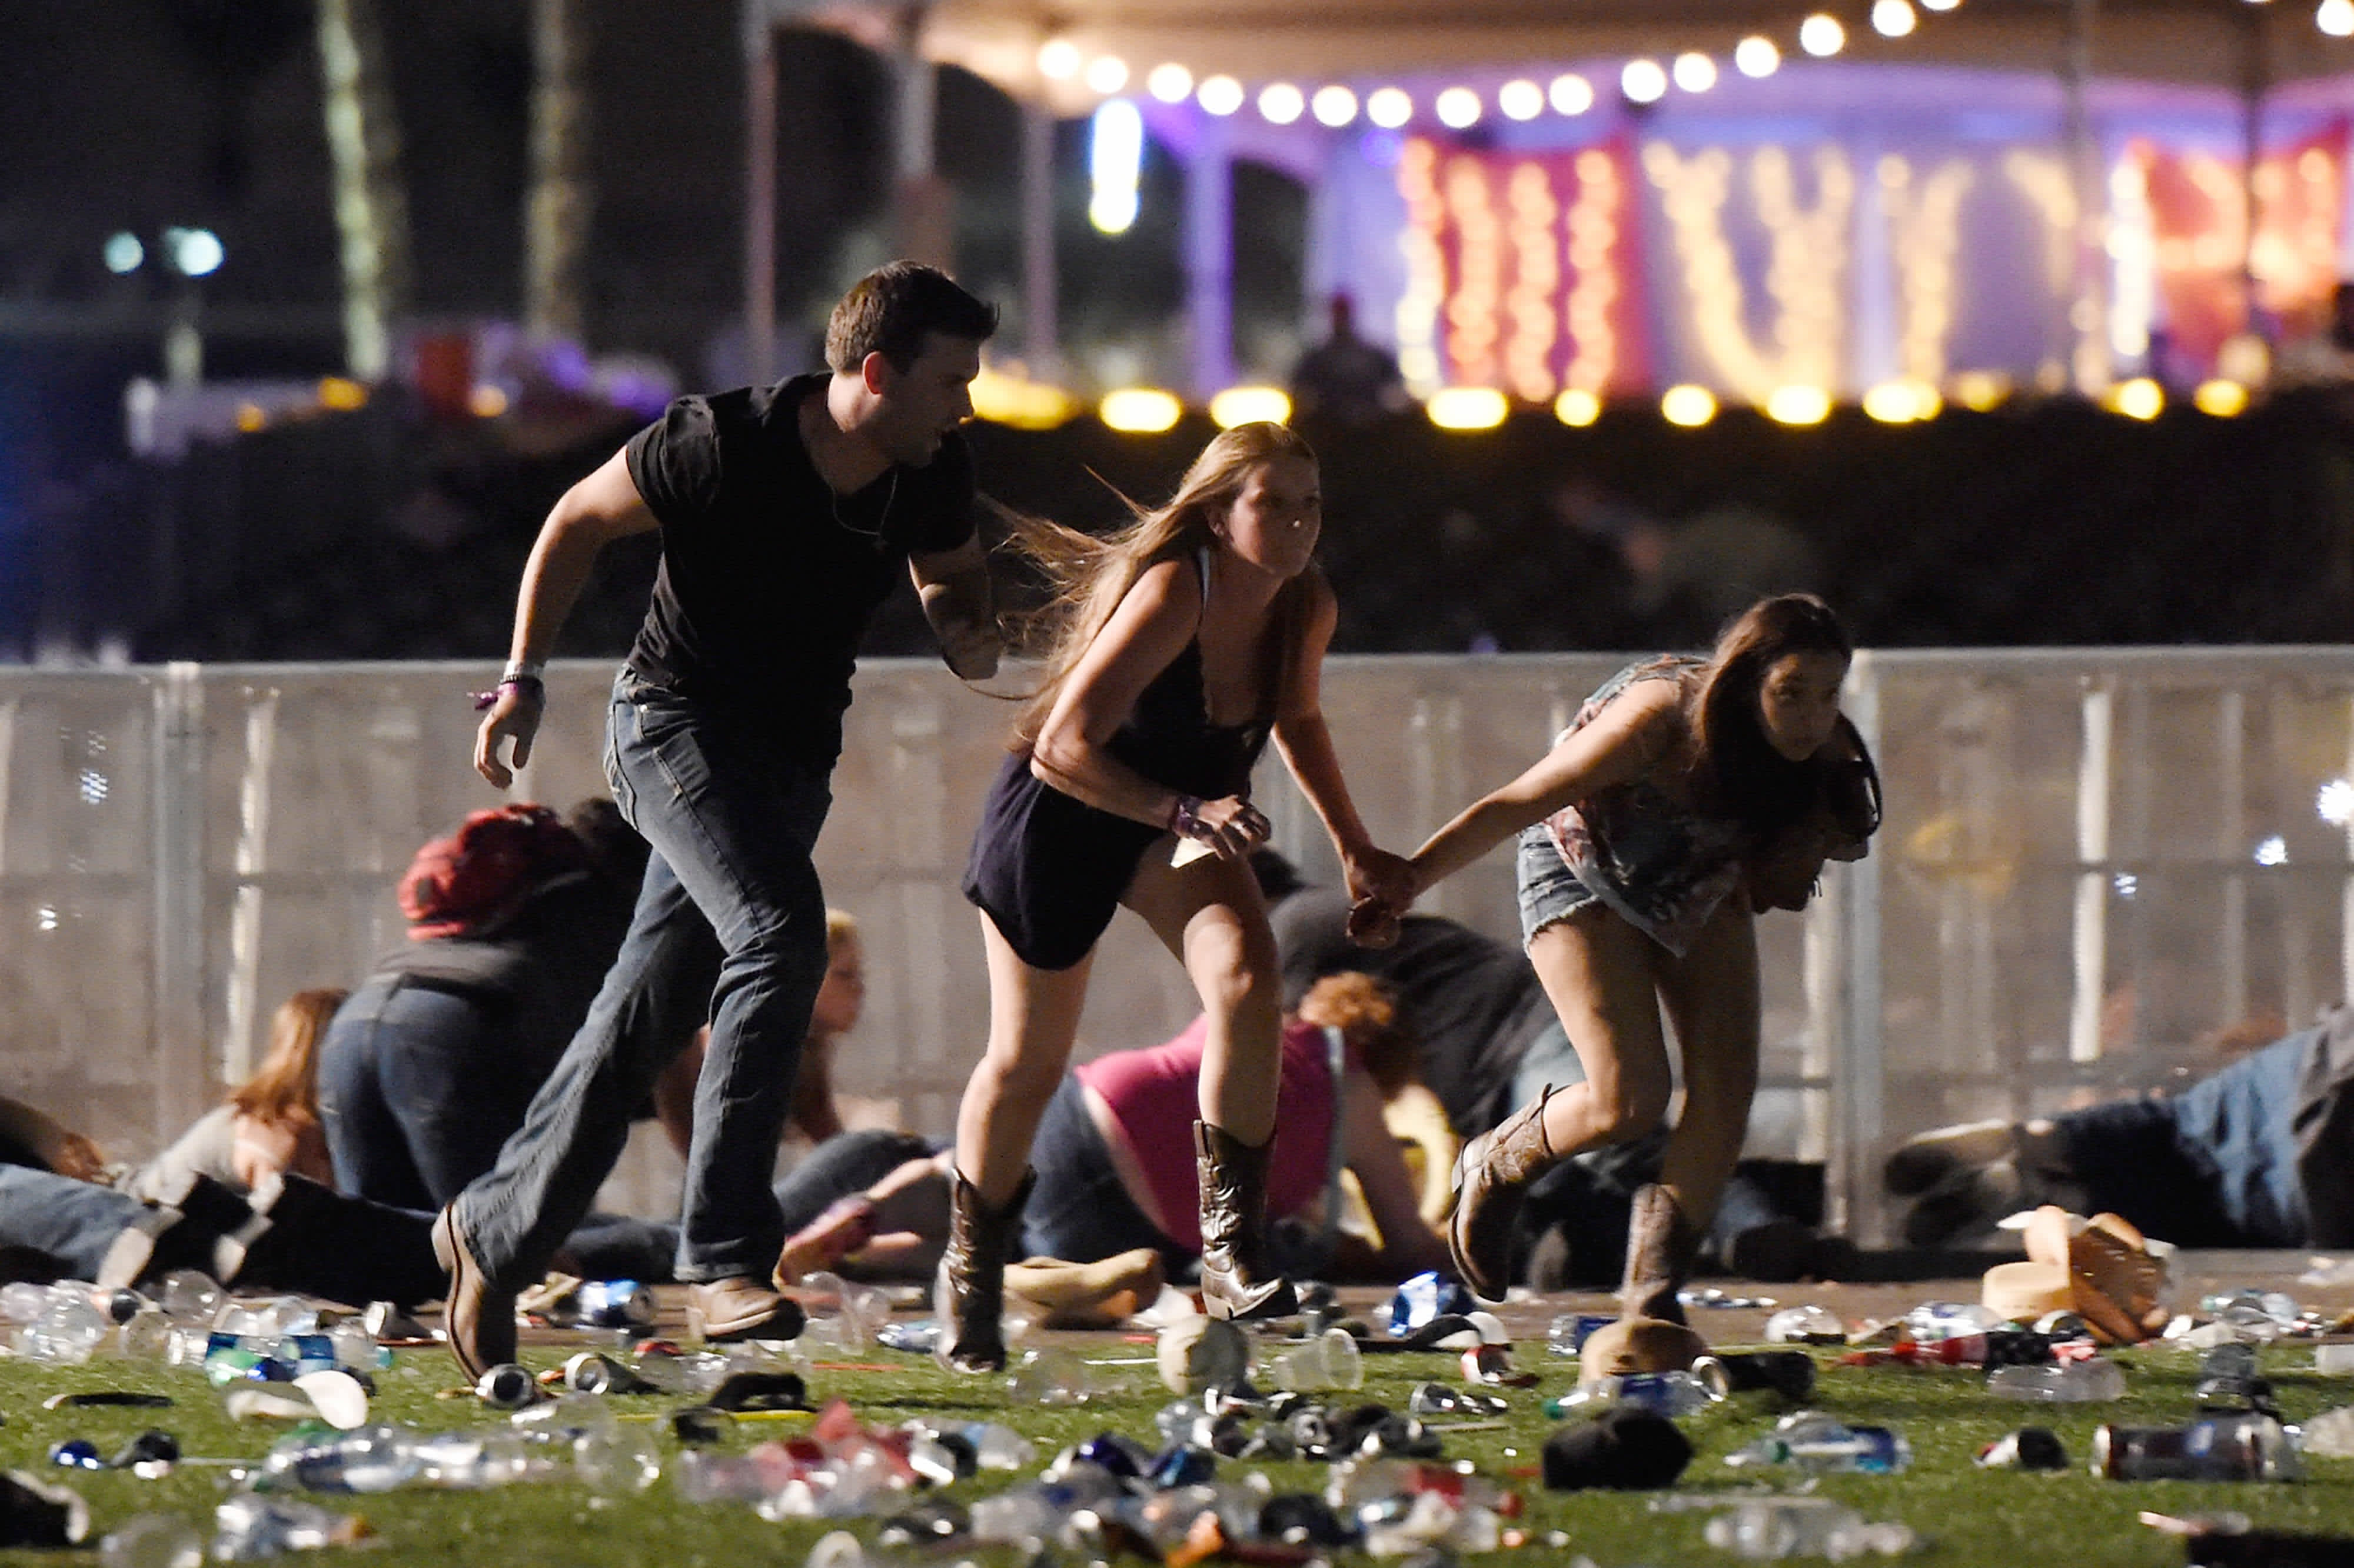 People run from the Route 91 Harvest country music festival after gun fire (DAVID BECKER / GETTY IMAGES / AFP)